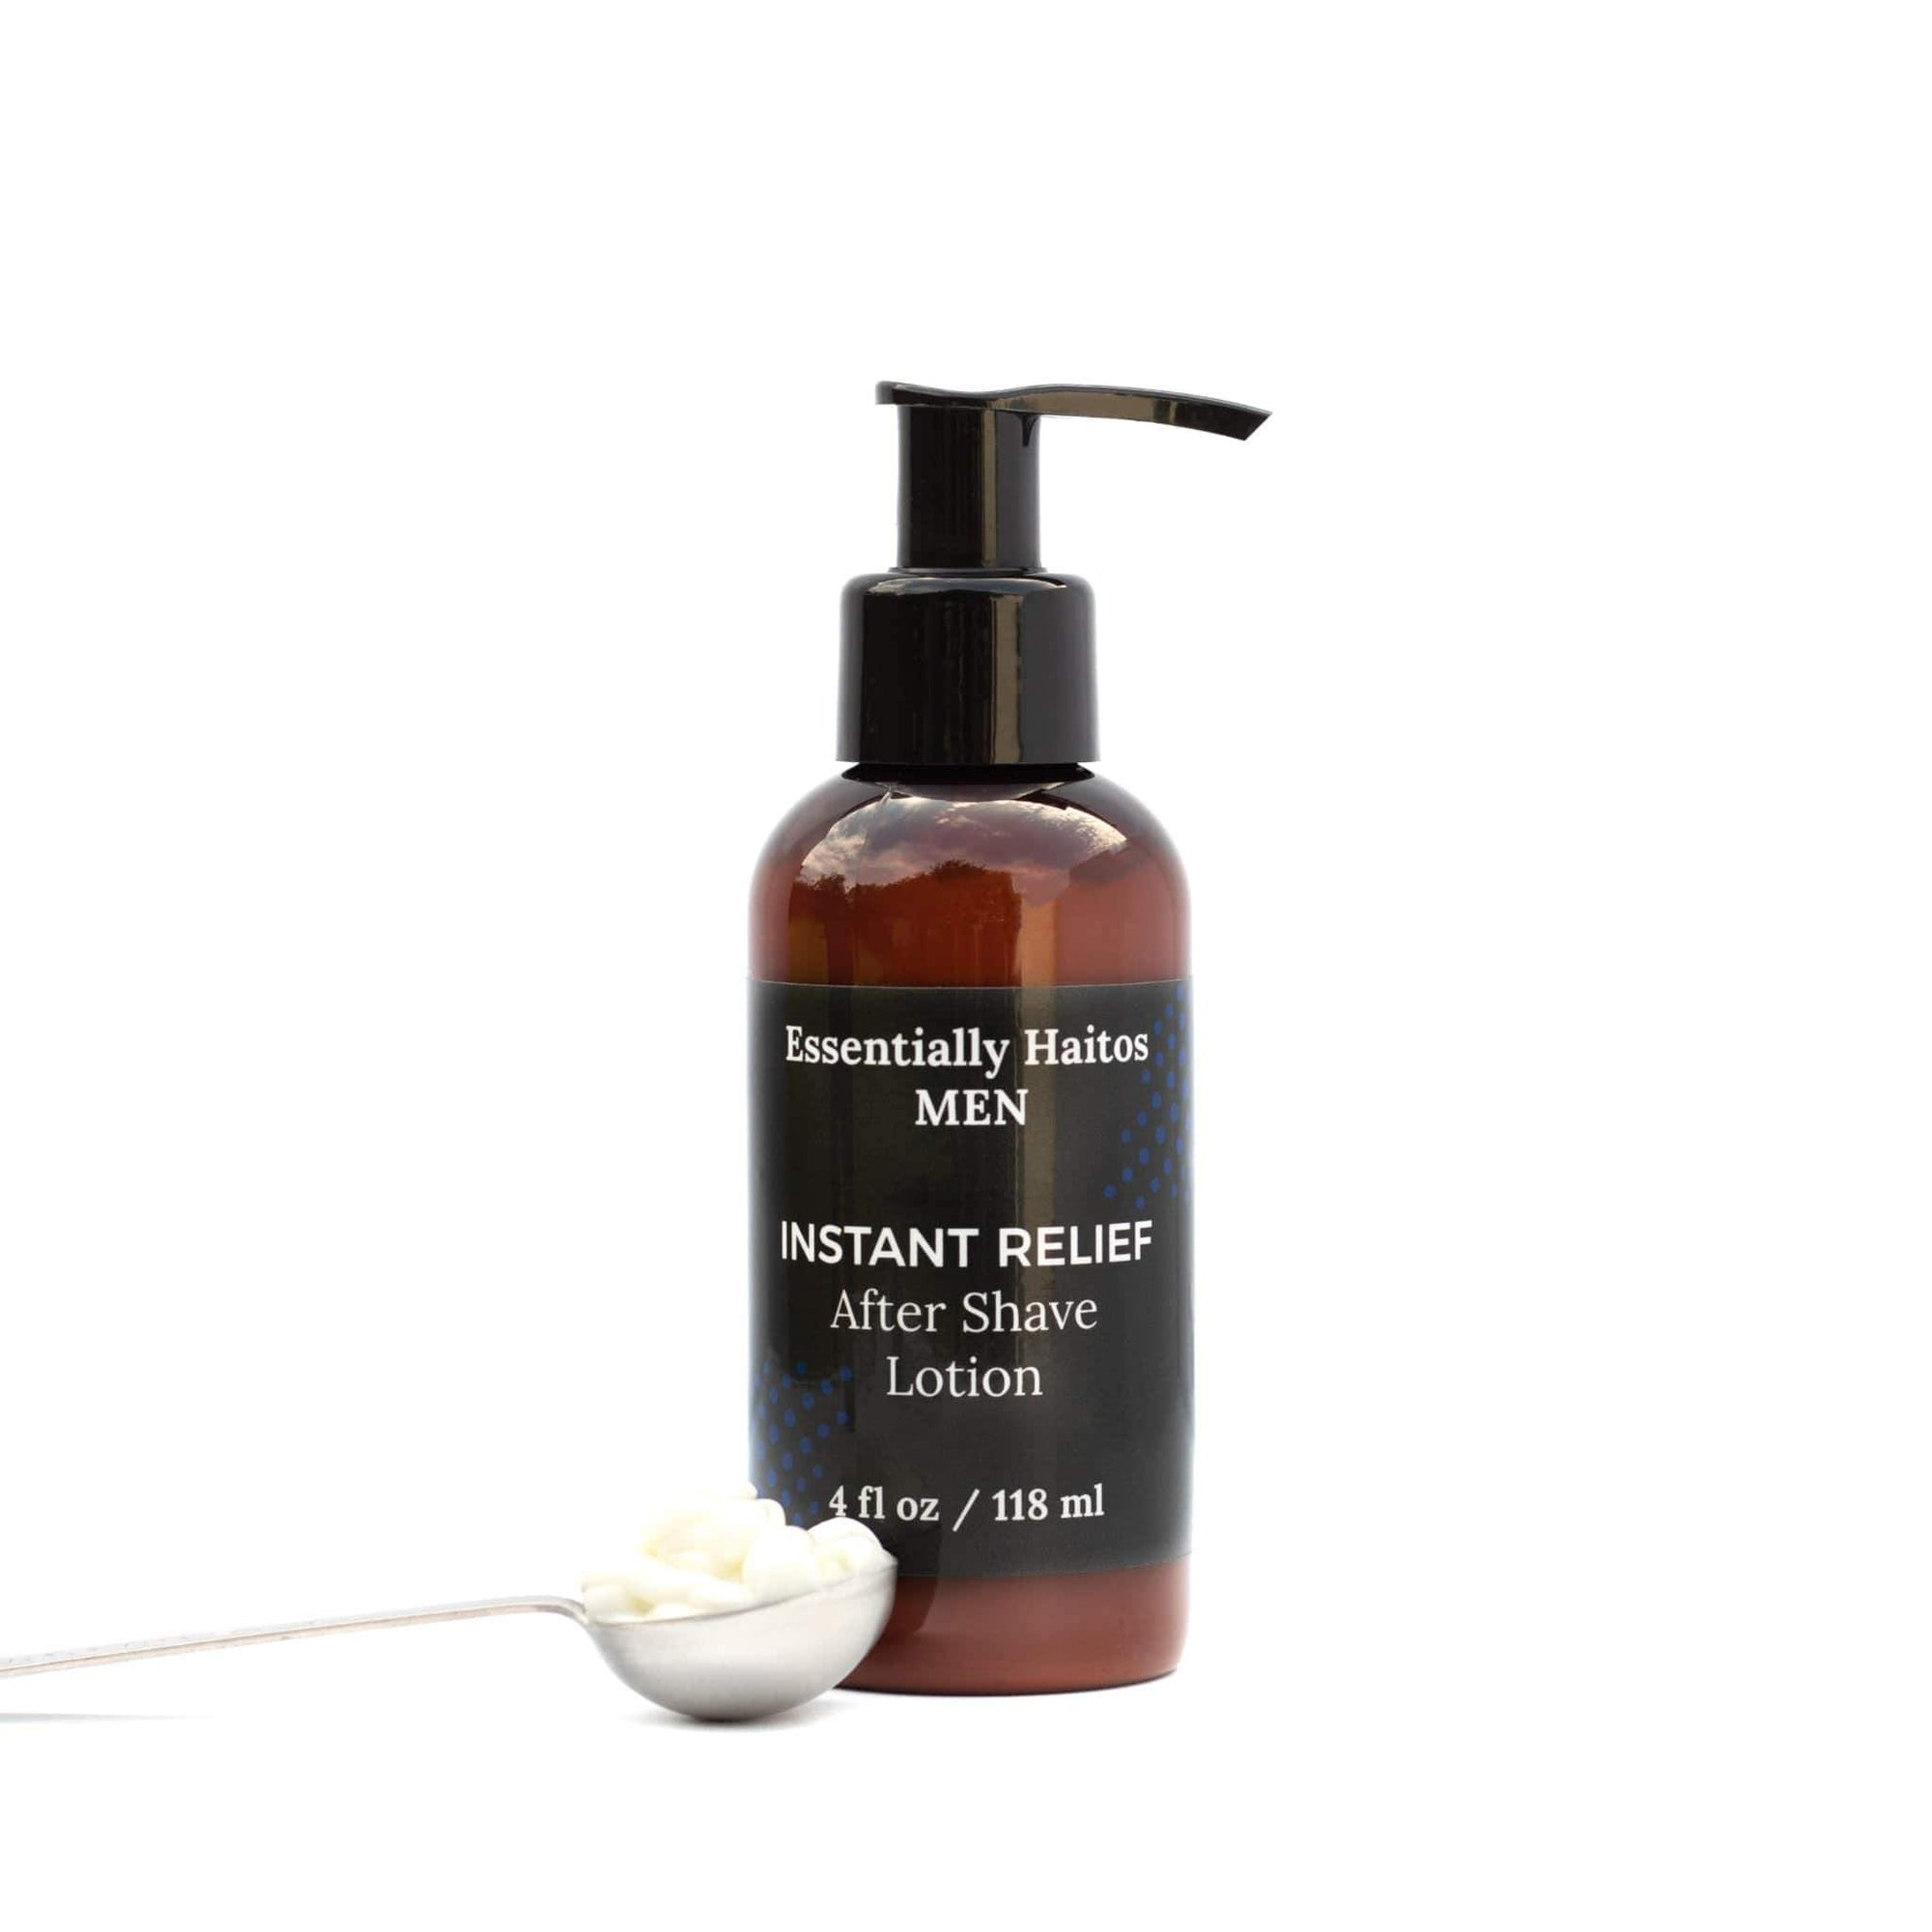 Instant Relief After Shave Lotion